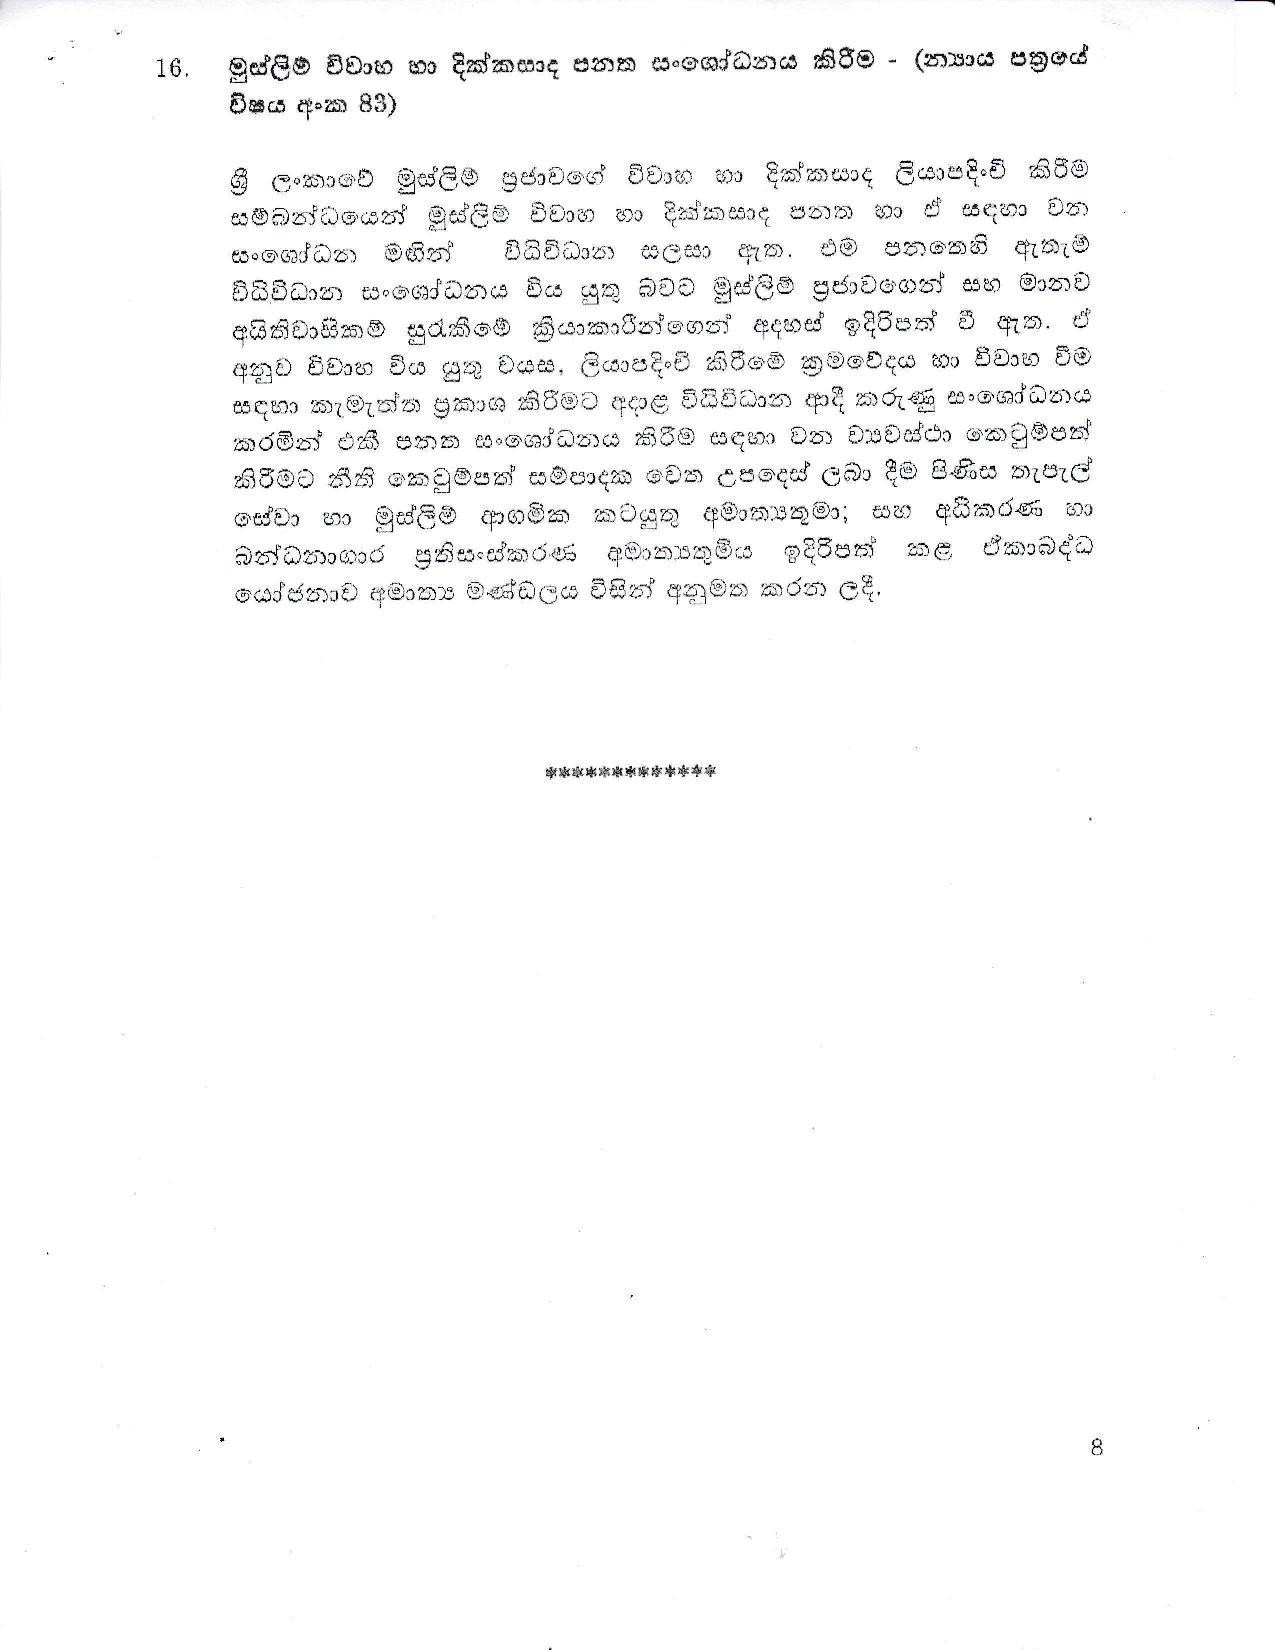 Cabinet Decision on 20.08.2019 1 page 008